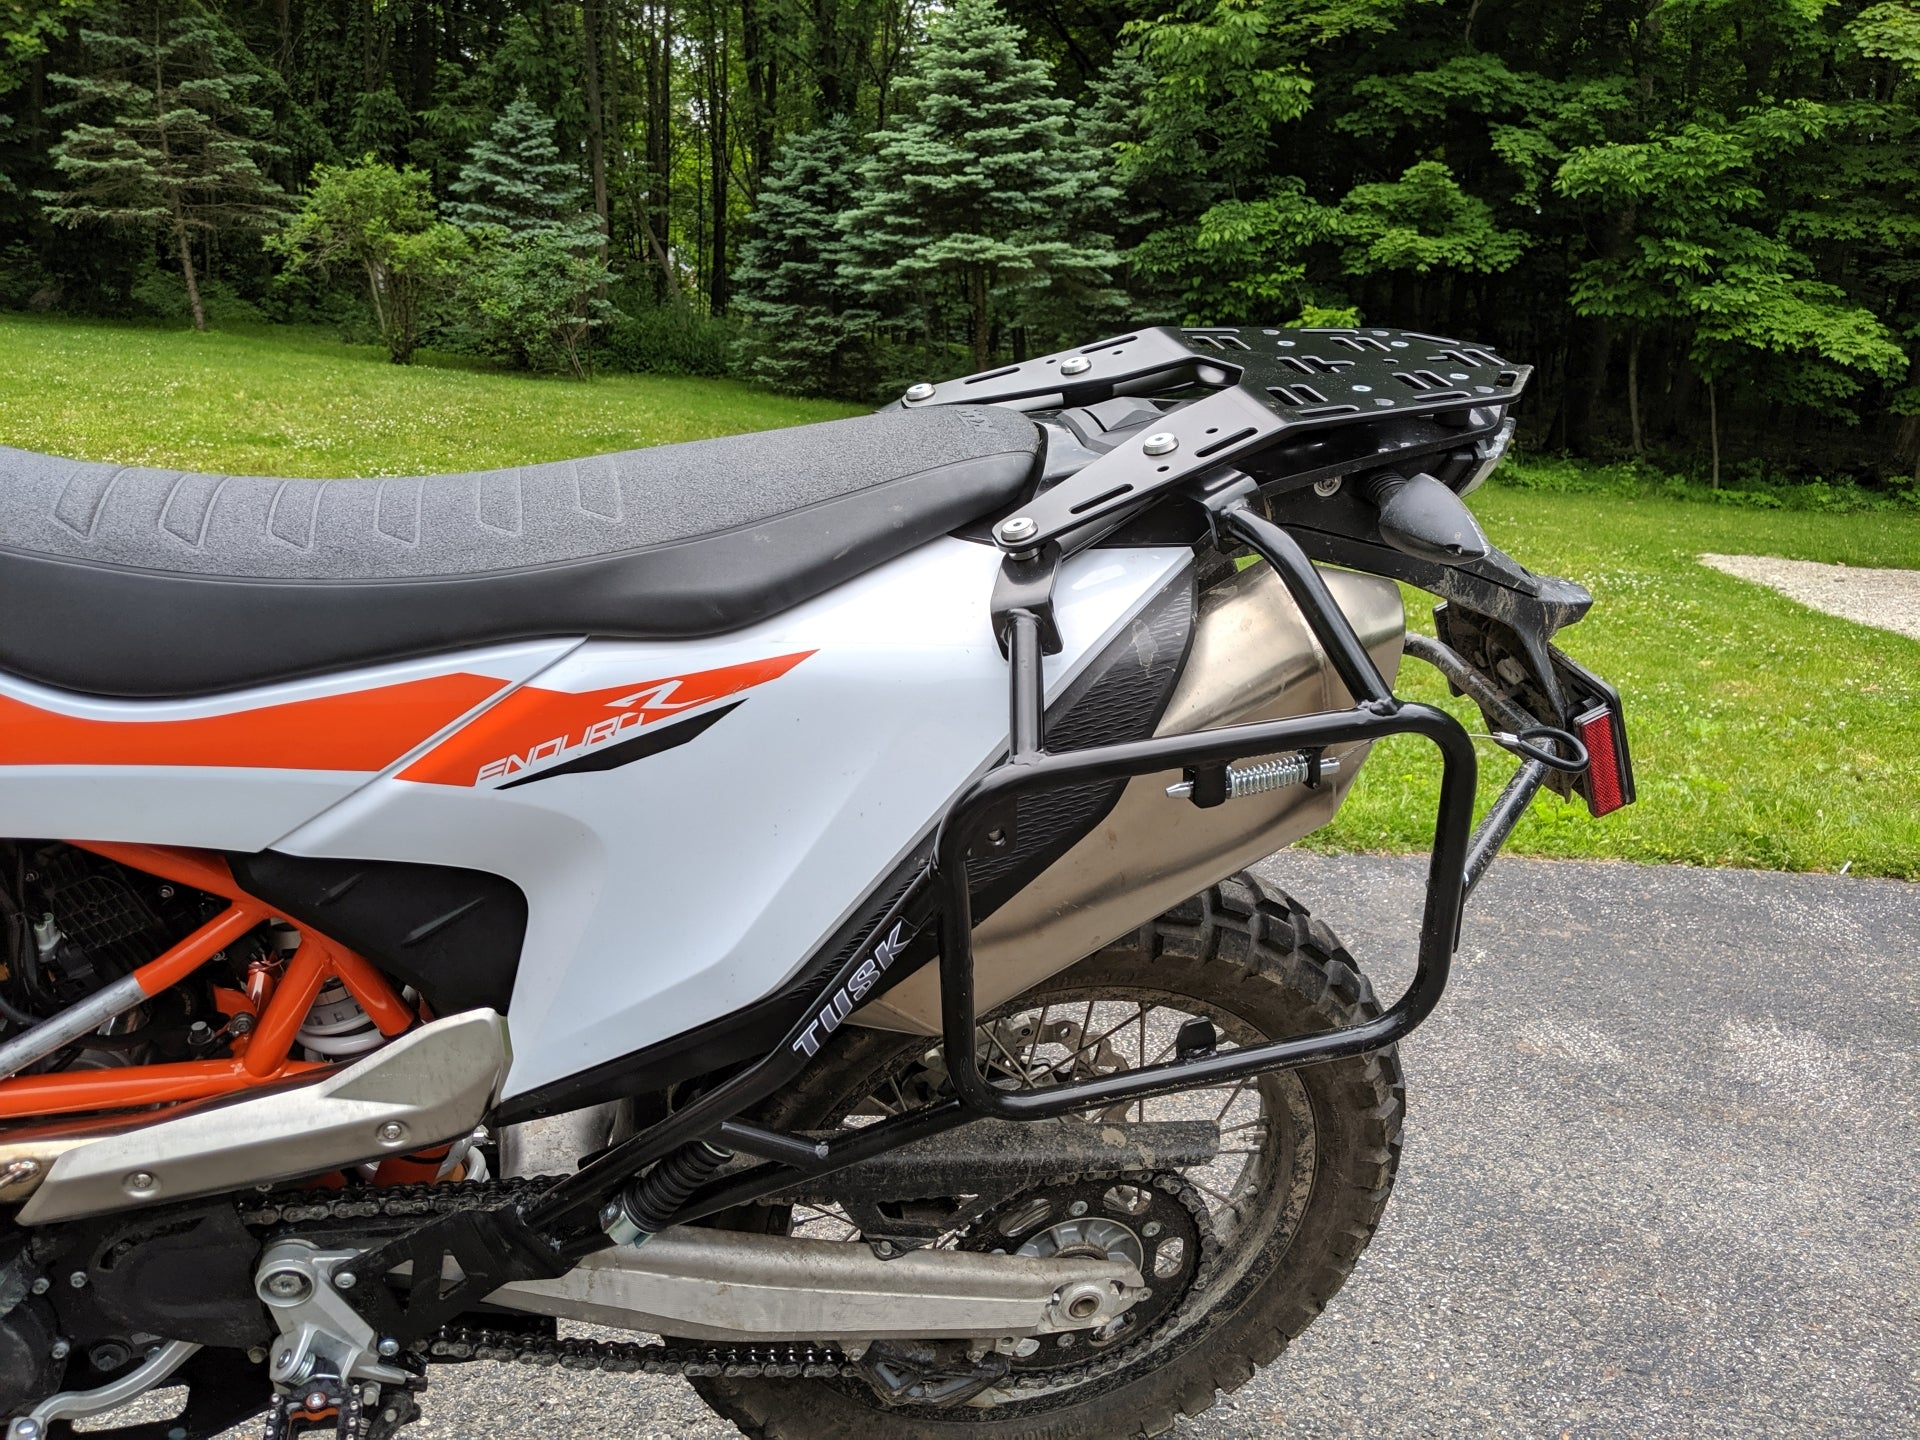 Luggage rack and Tusk pannier racks for 2019 KTM 690 Enduro